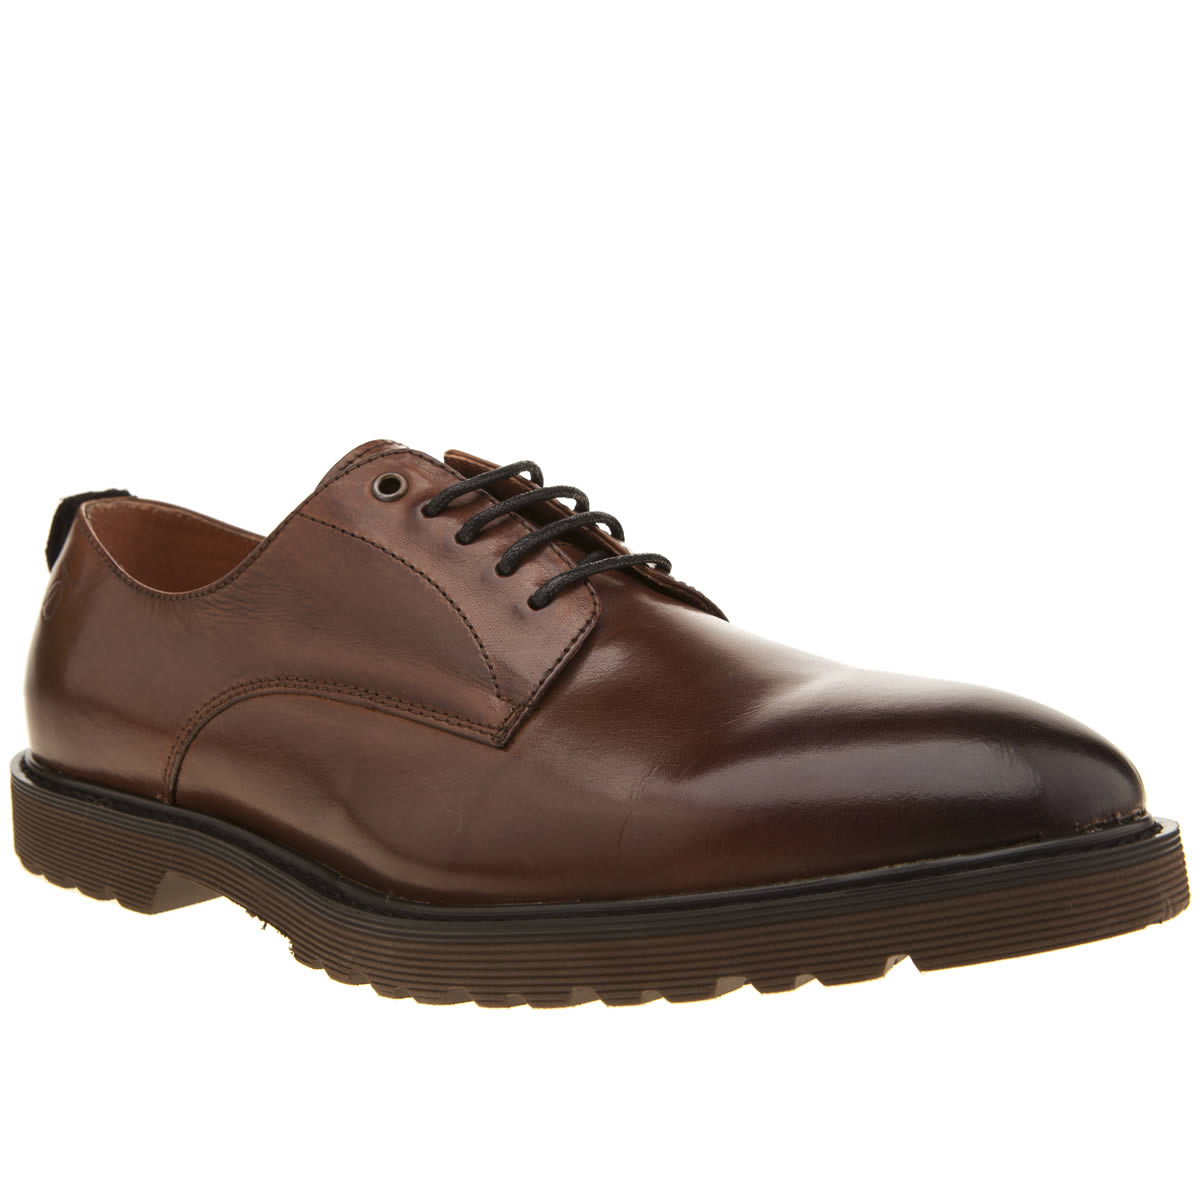 Peter Werth Peter Werth Brown Laurie Derby Shoes